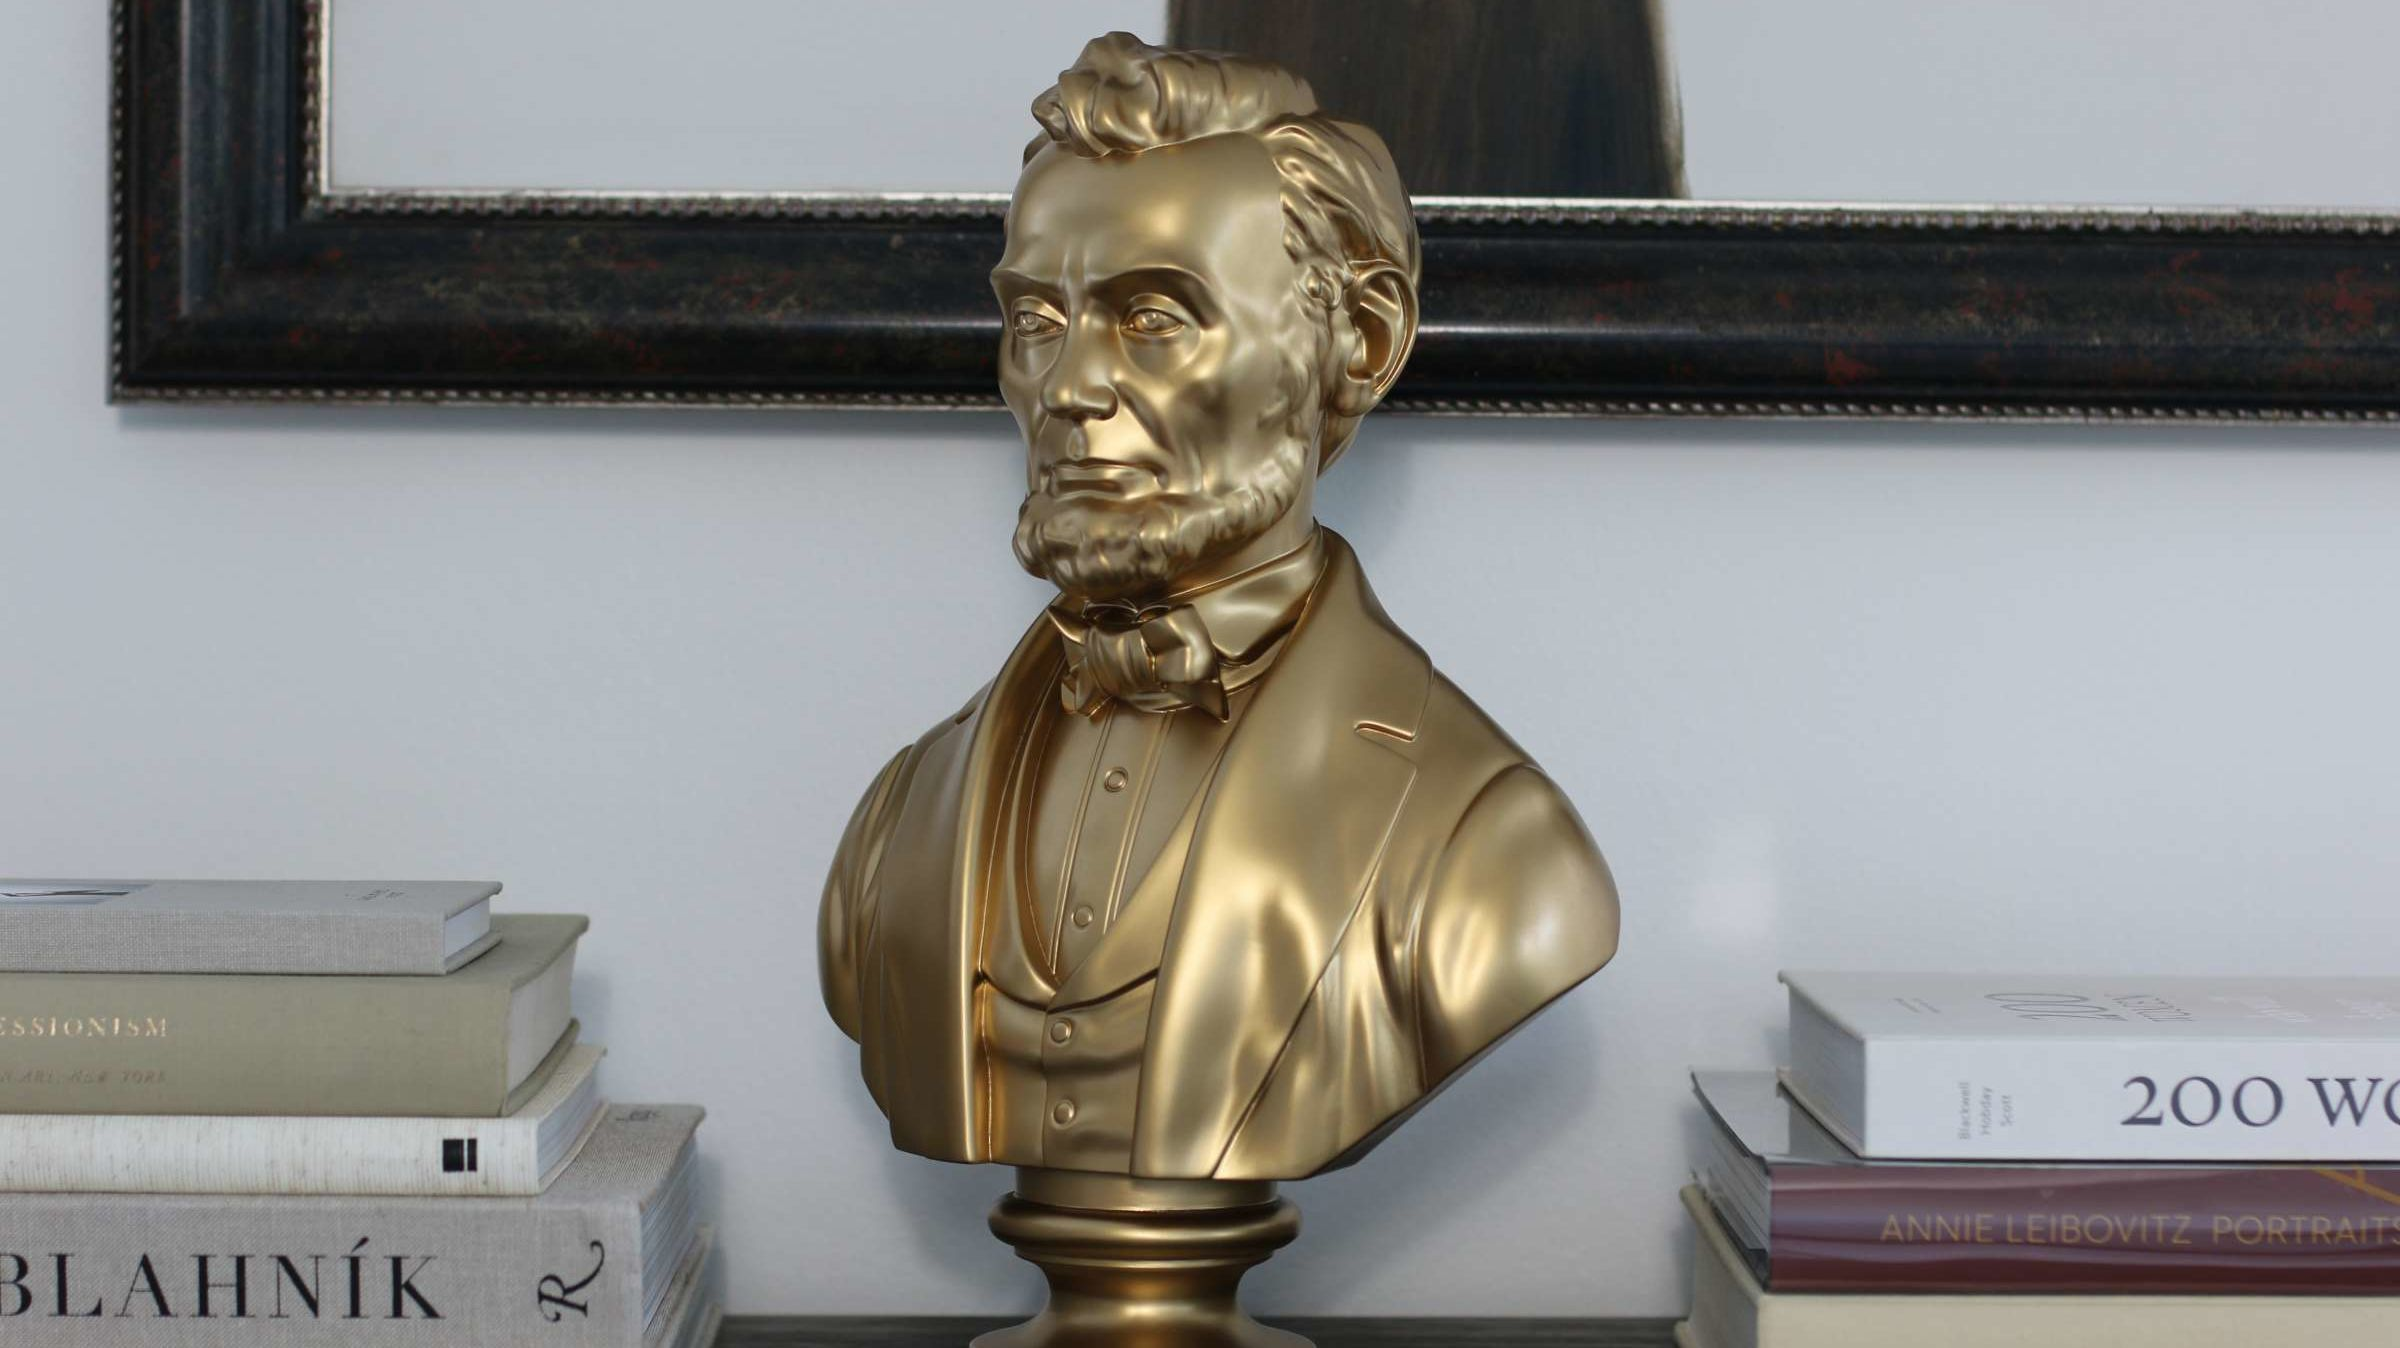 Decorate Your Home With Hand-Sculpted Busts of Abraham Lincoln, Barack Obama, and More